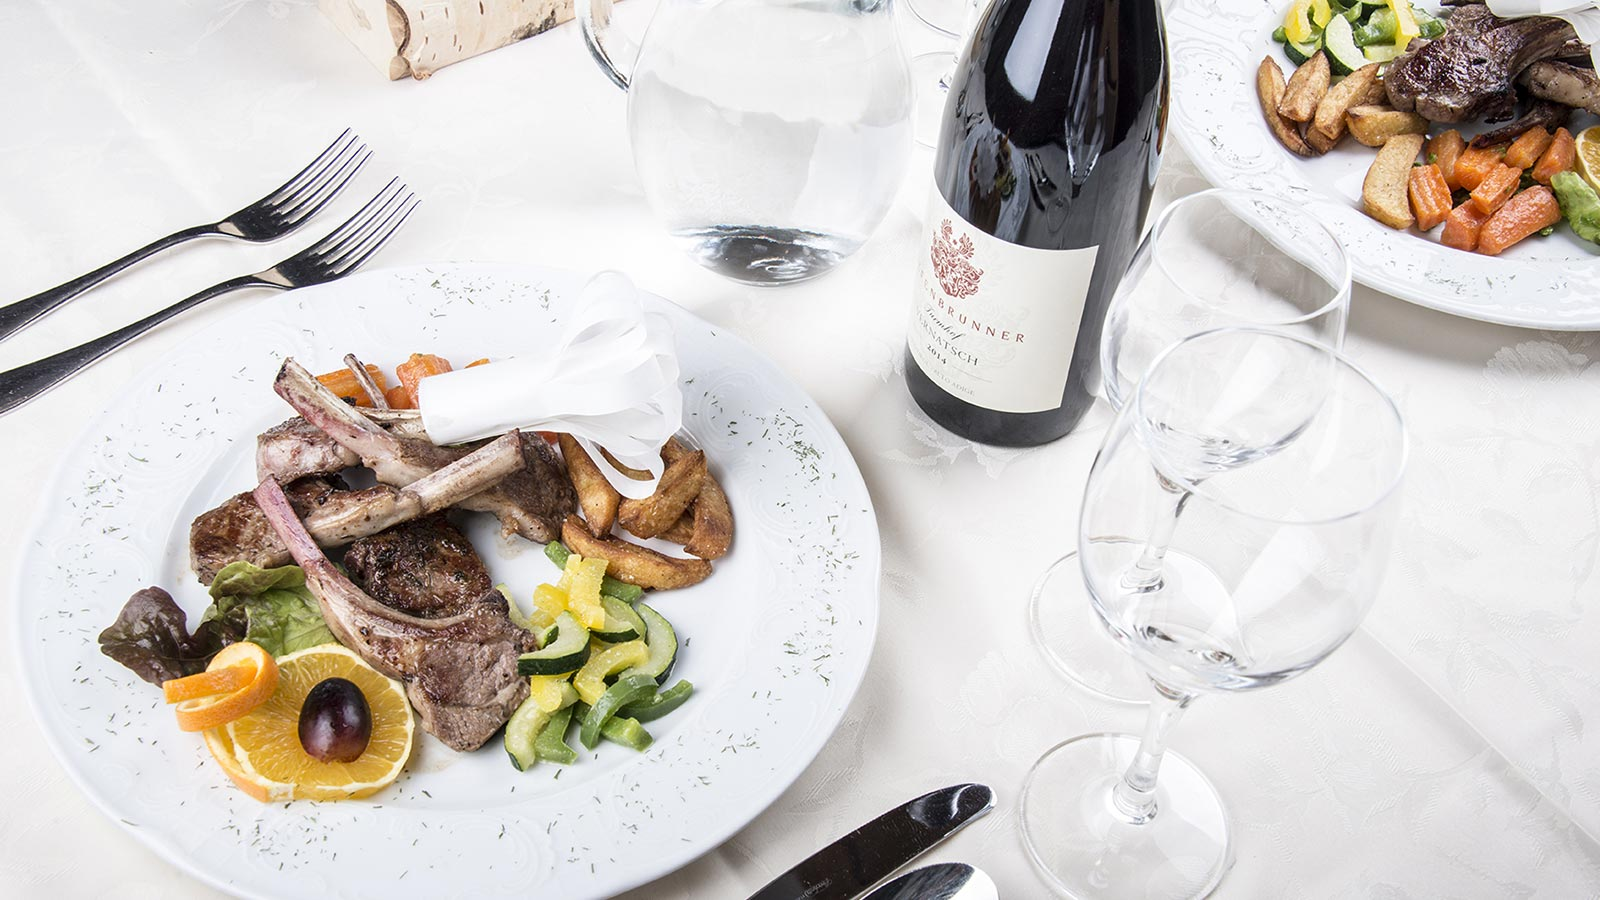 Exquisite dish with lamb ribs and vegetables accompanied by a bottle of red wine